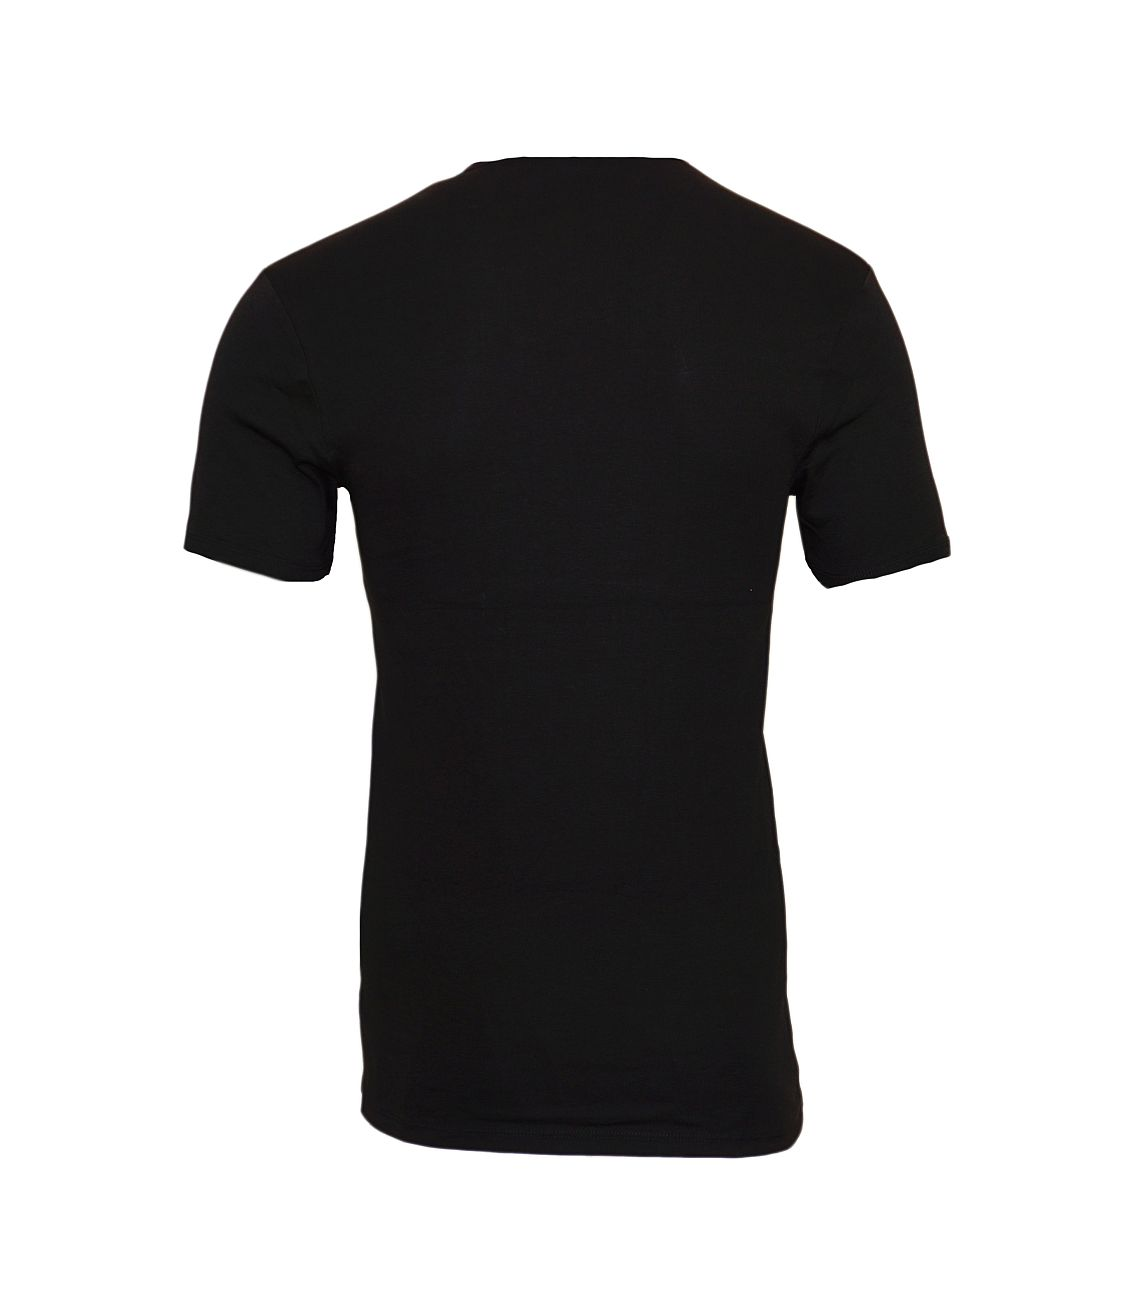 G-Star RAW 2er Pack T-Shirt Slim Fit V-Ausschnitt D07207-124-990 Black F18-GSP1